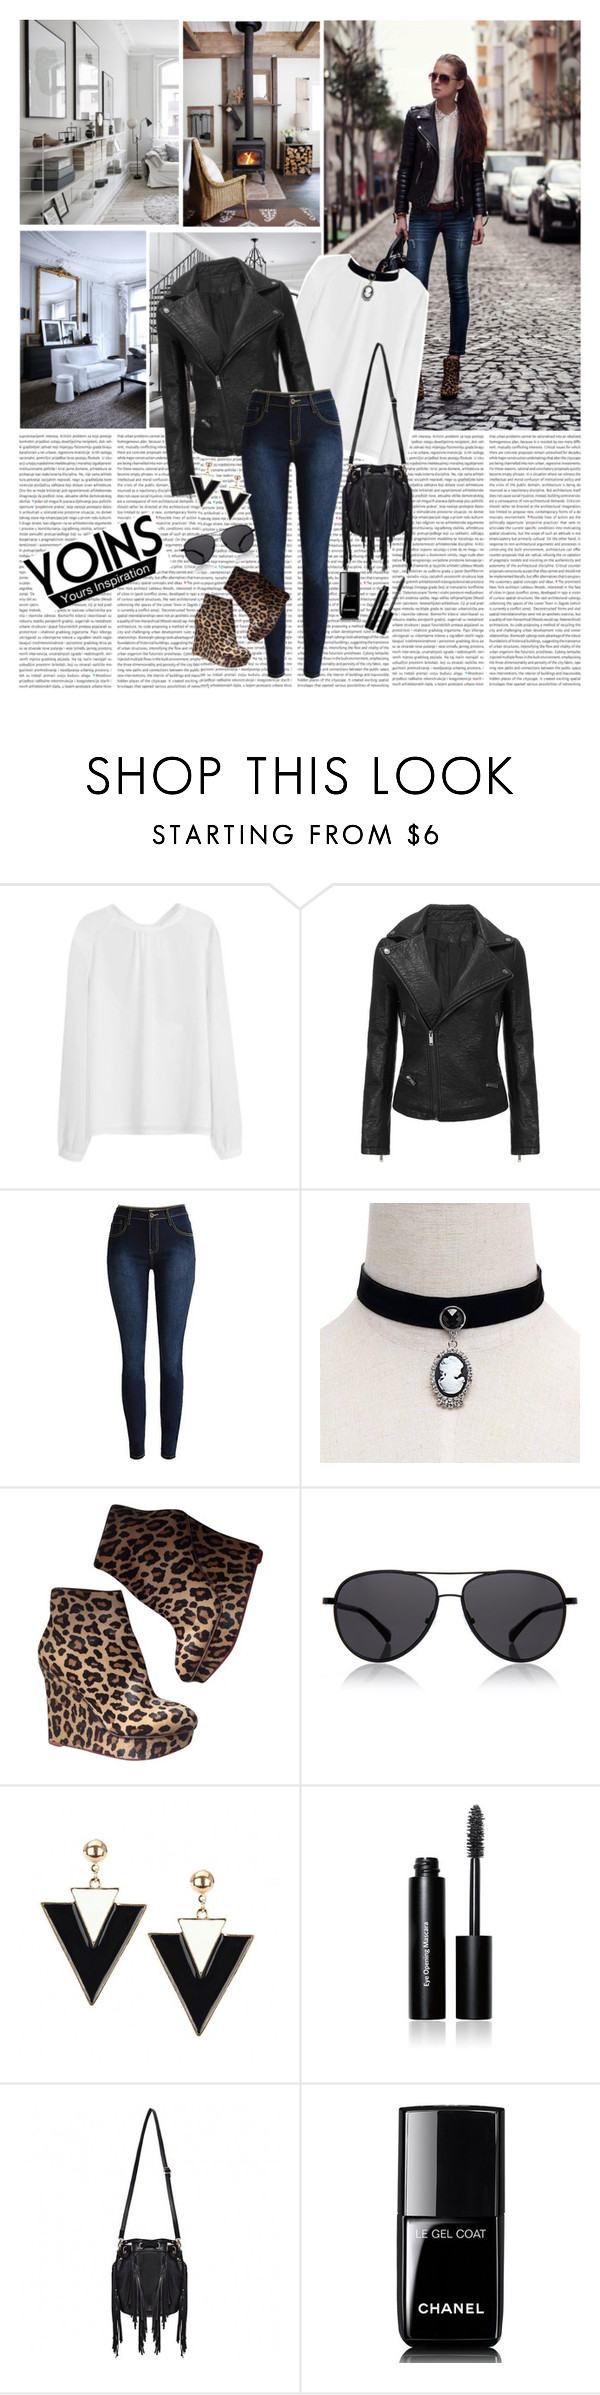 """YoIns Chokers"" by katarinamm ❤ liked on Polyvore featuring Charlotte Olympia, The Row, Bobbi Brown Cosmetics, Chanel and yoinscollection"